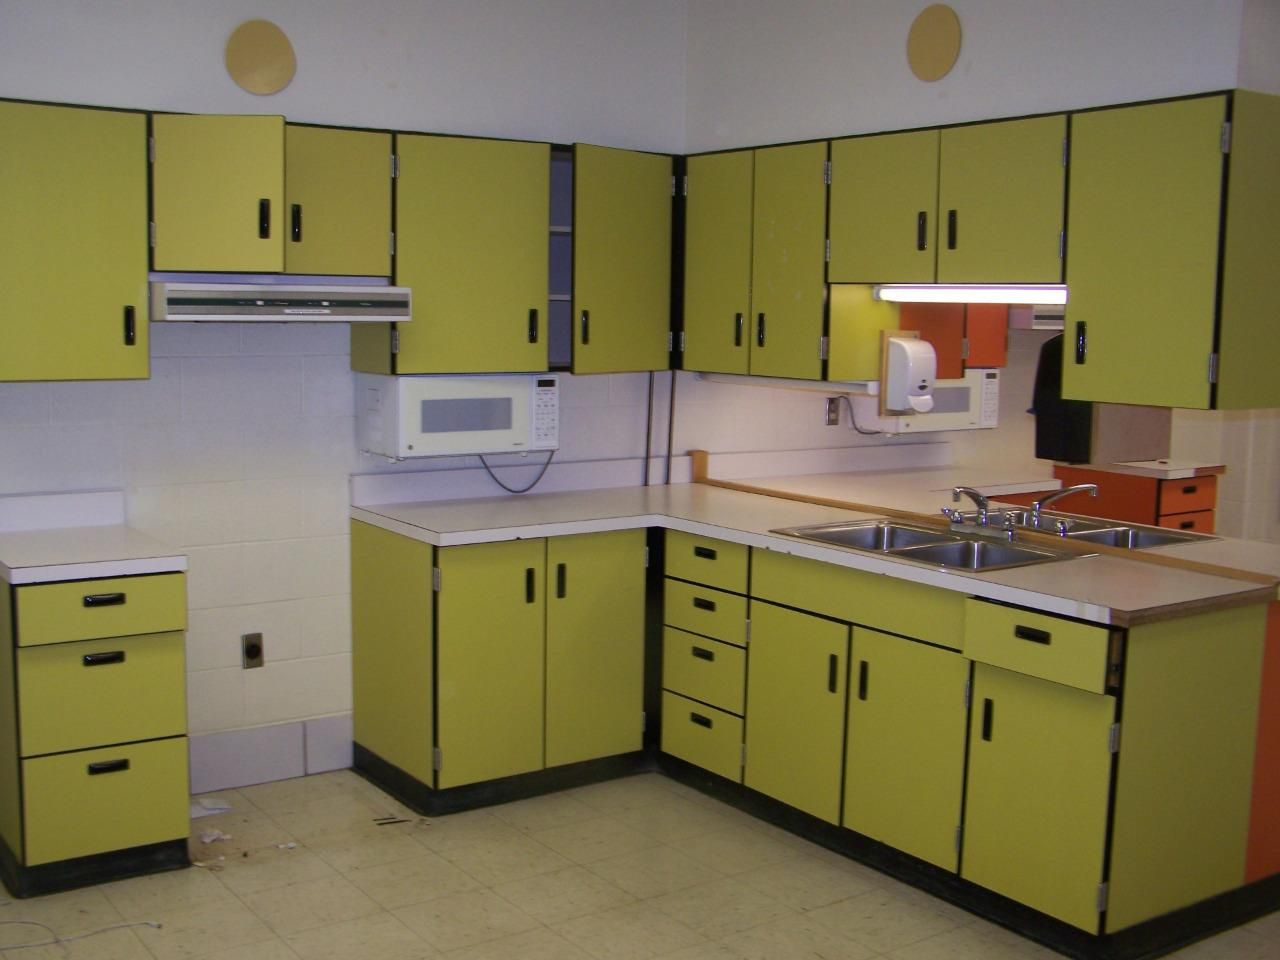 Image result for 1960's kitchen cabinets | Kitchen ...